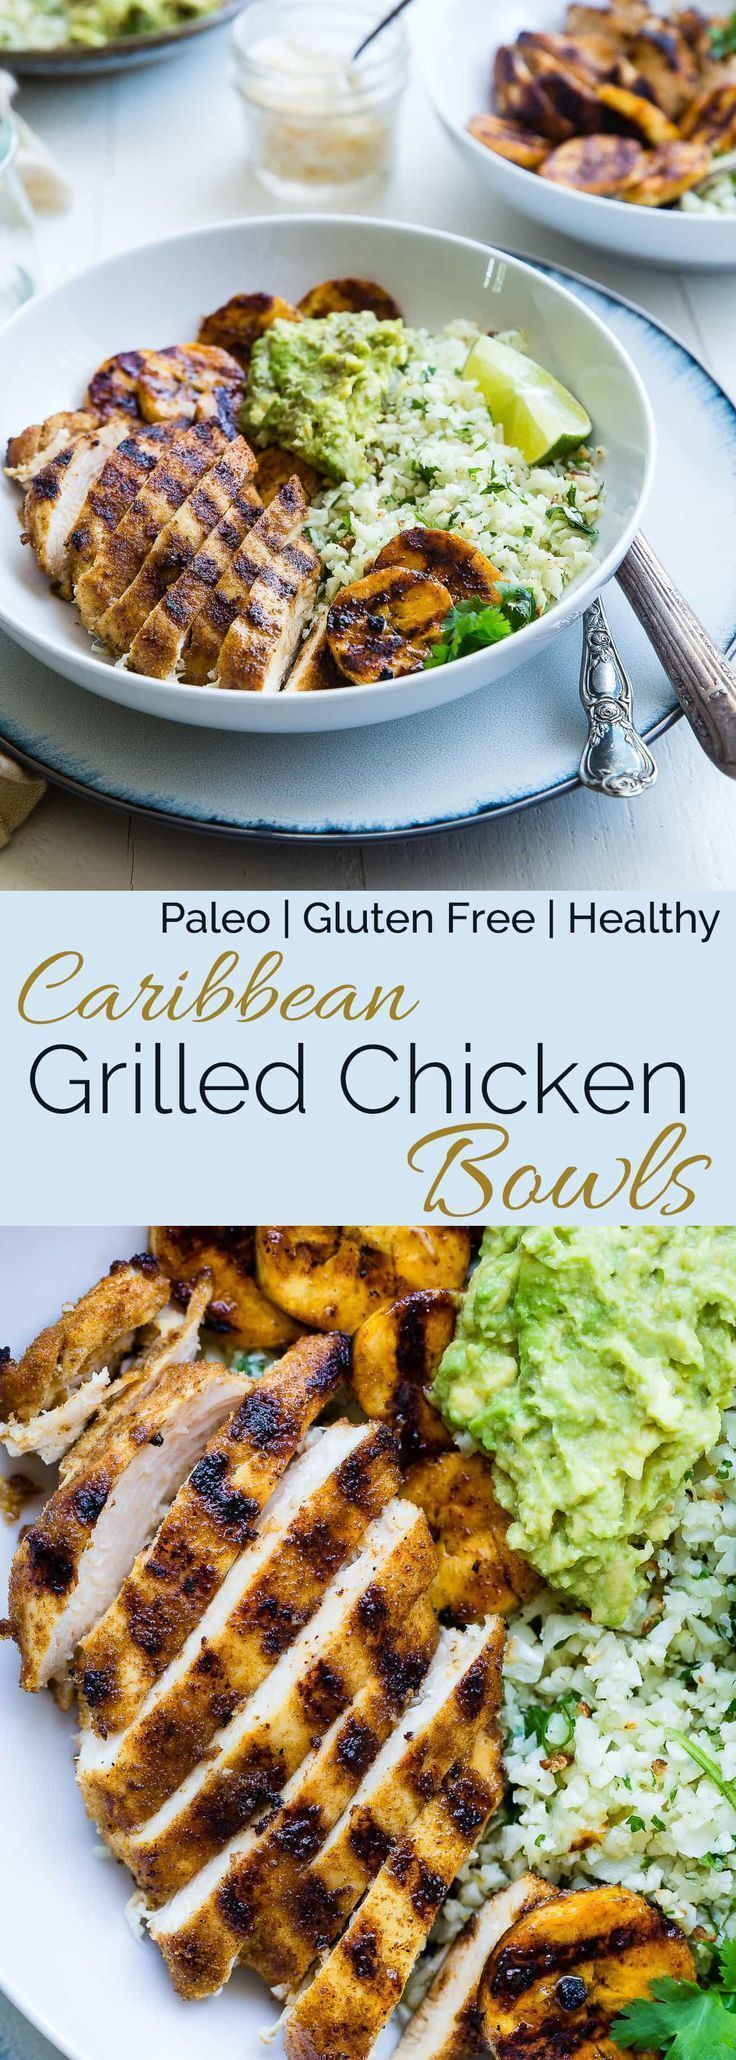 Caribbean Chicken Bowls - These paleo-friendly bowls have grilled plantains, cauliflower rice and avocado! A healthy, gluten free summer meal for under 500 calories!